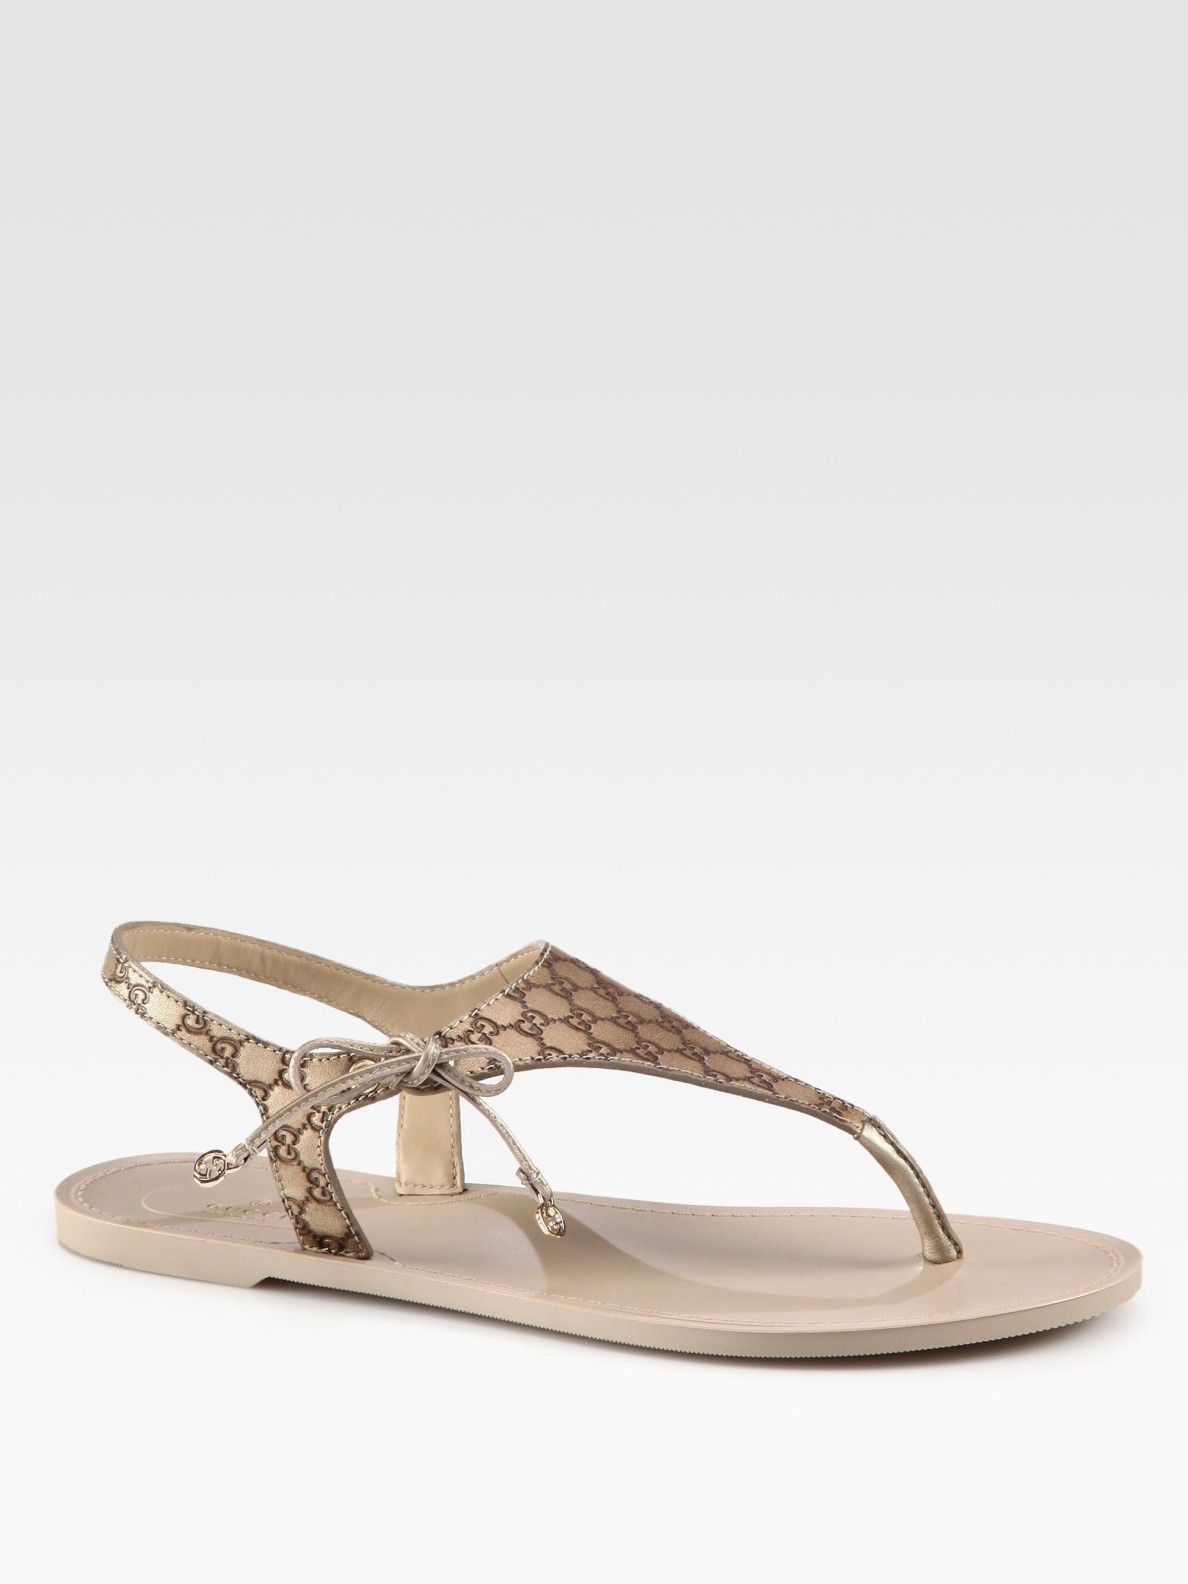 922857ec81c Gucci Katina Leather Thong Sandals in Gold (champagne)